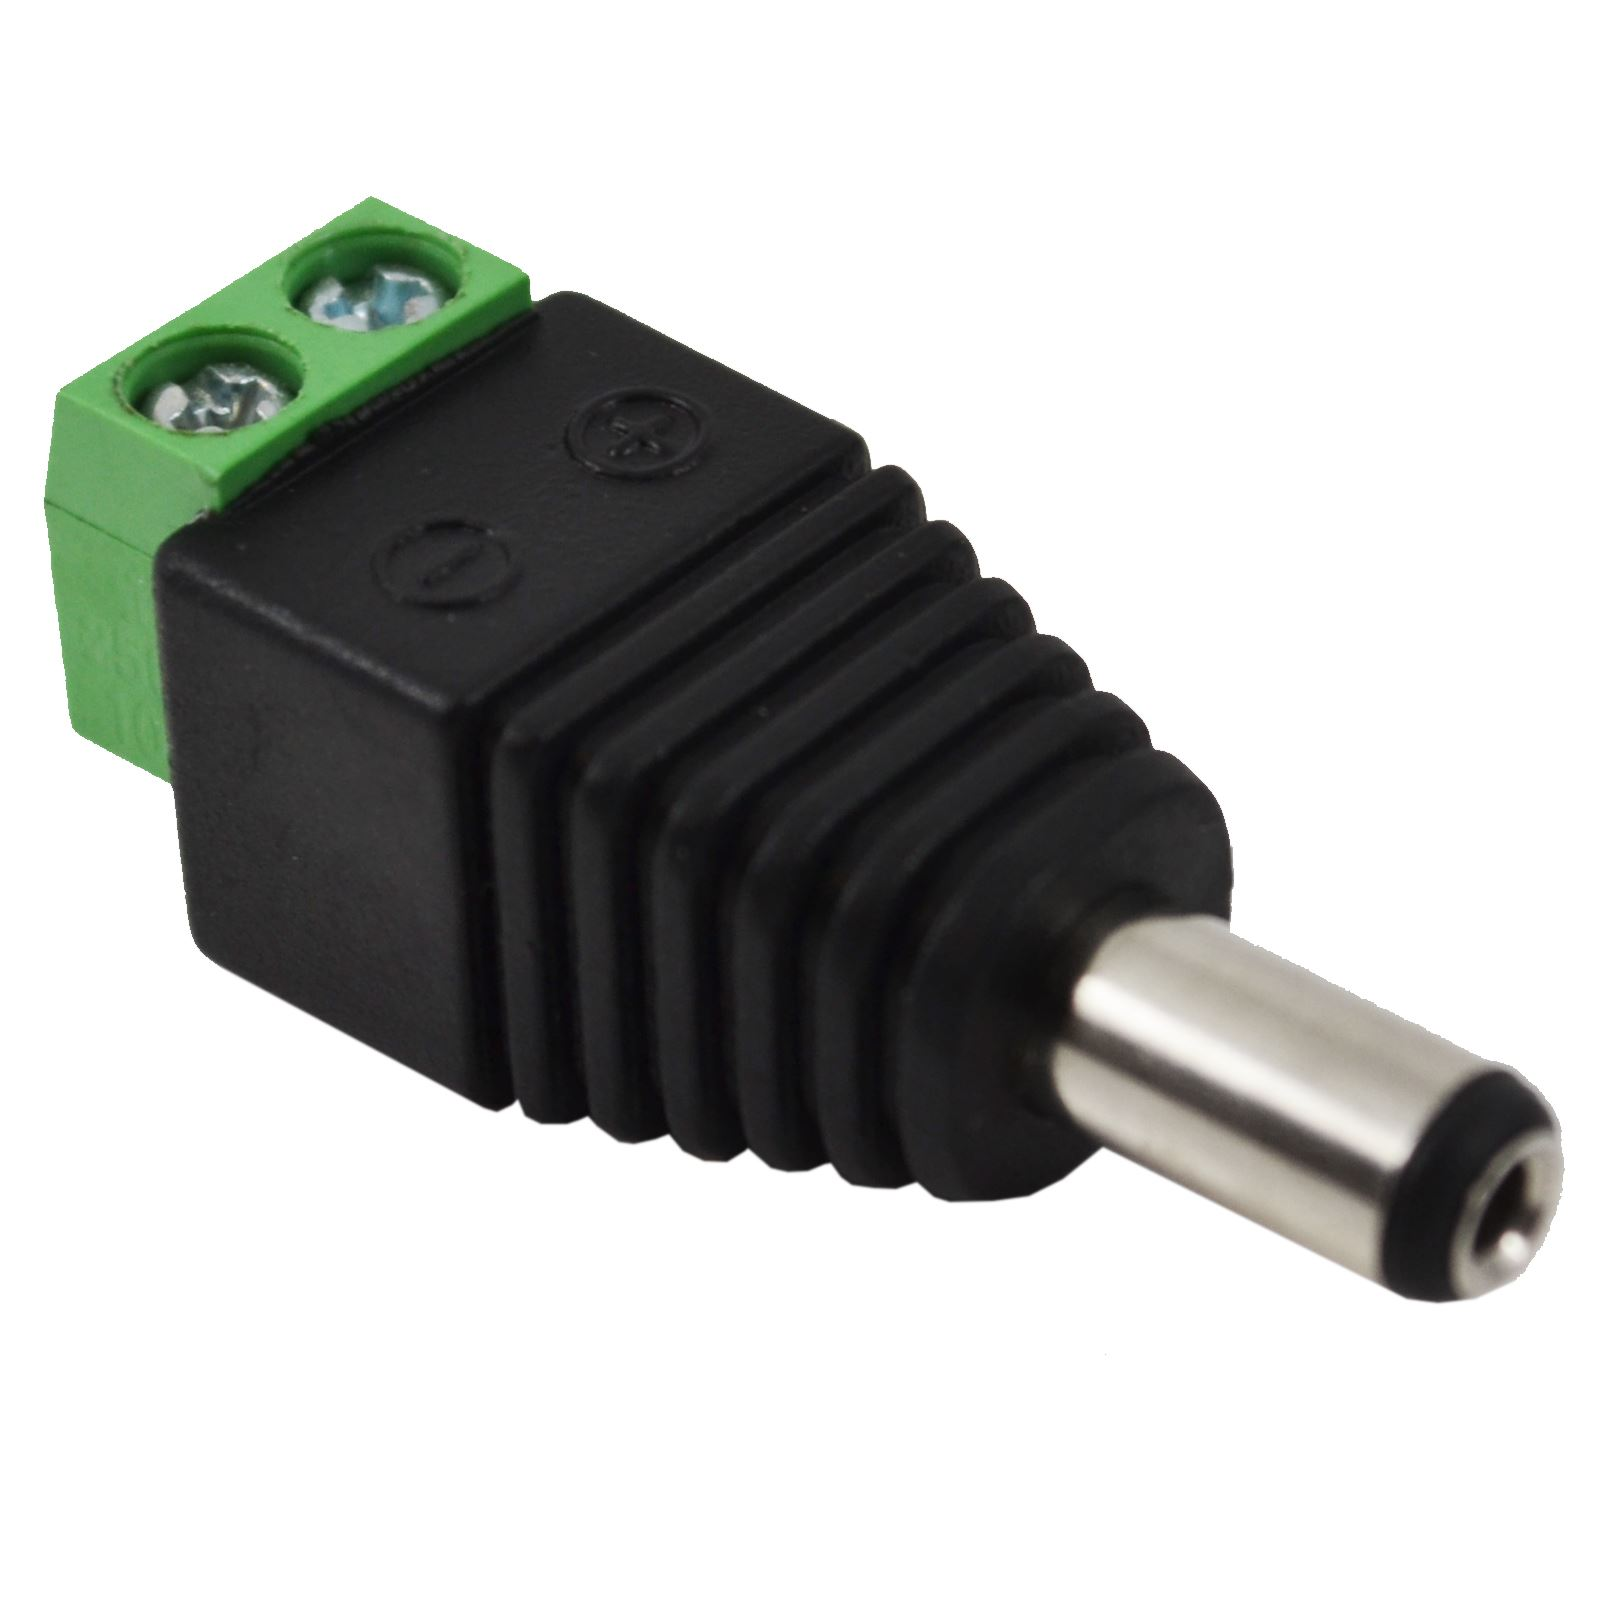 Coaxial Power Jack Wiring Sikker Male Plug Adapter For Security Camera Ebay 1600x1600